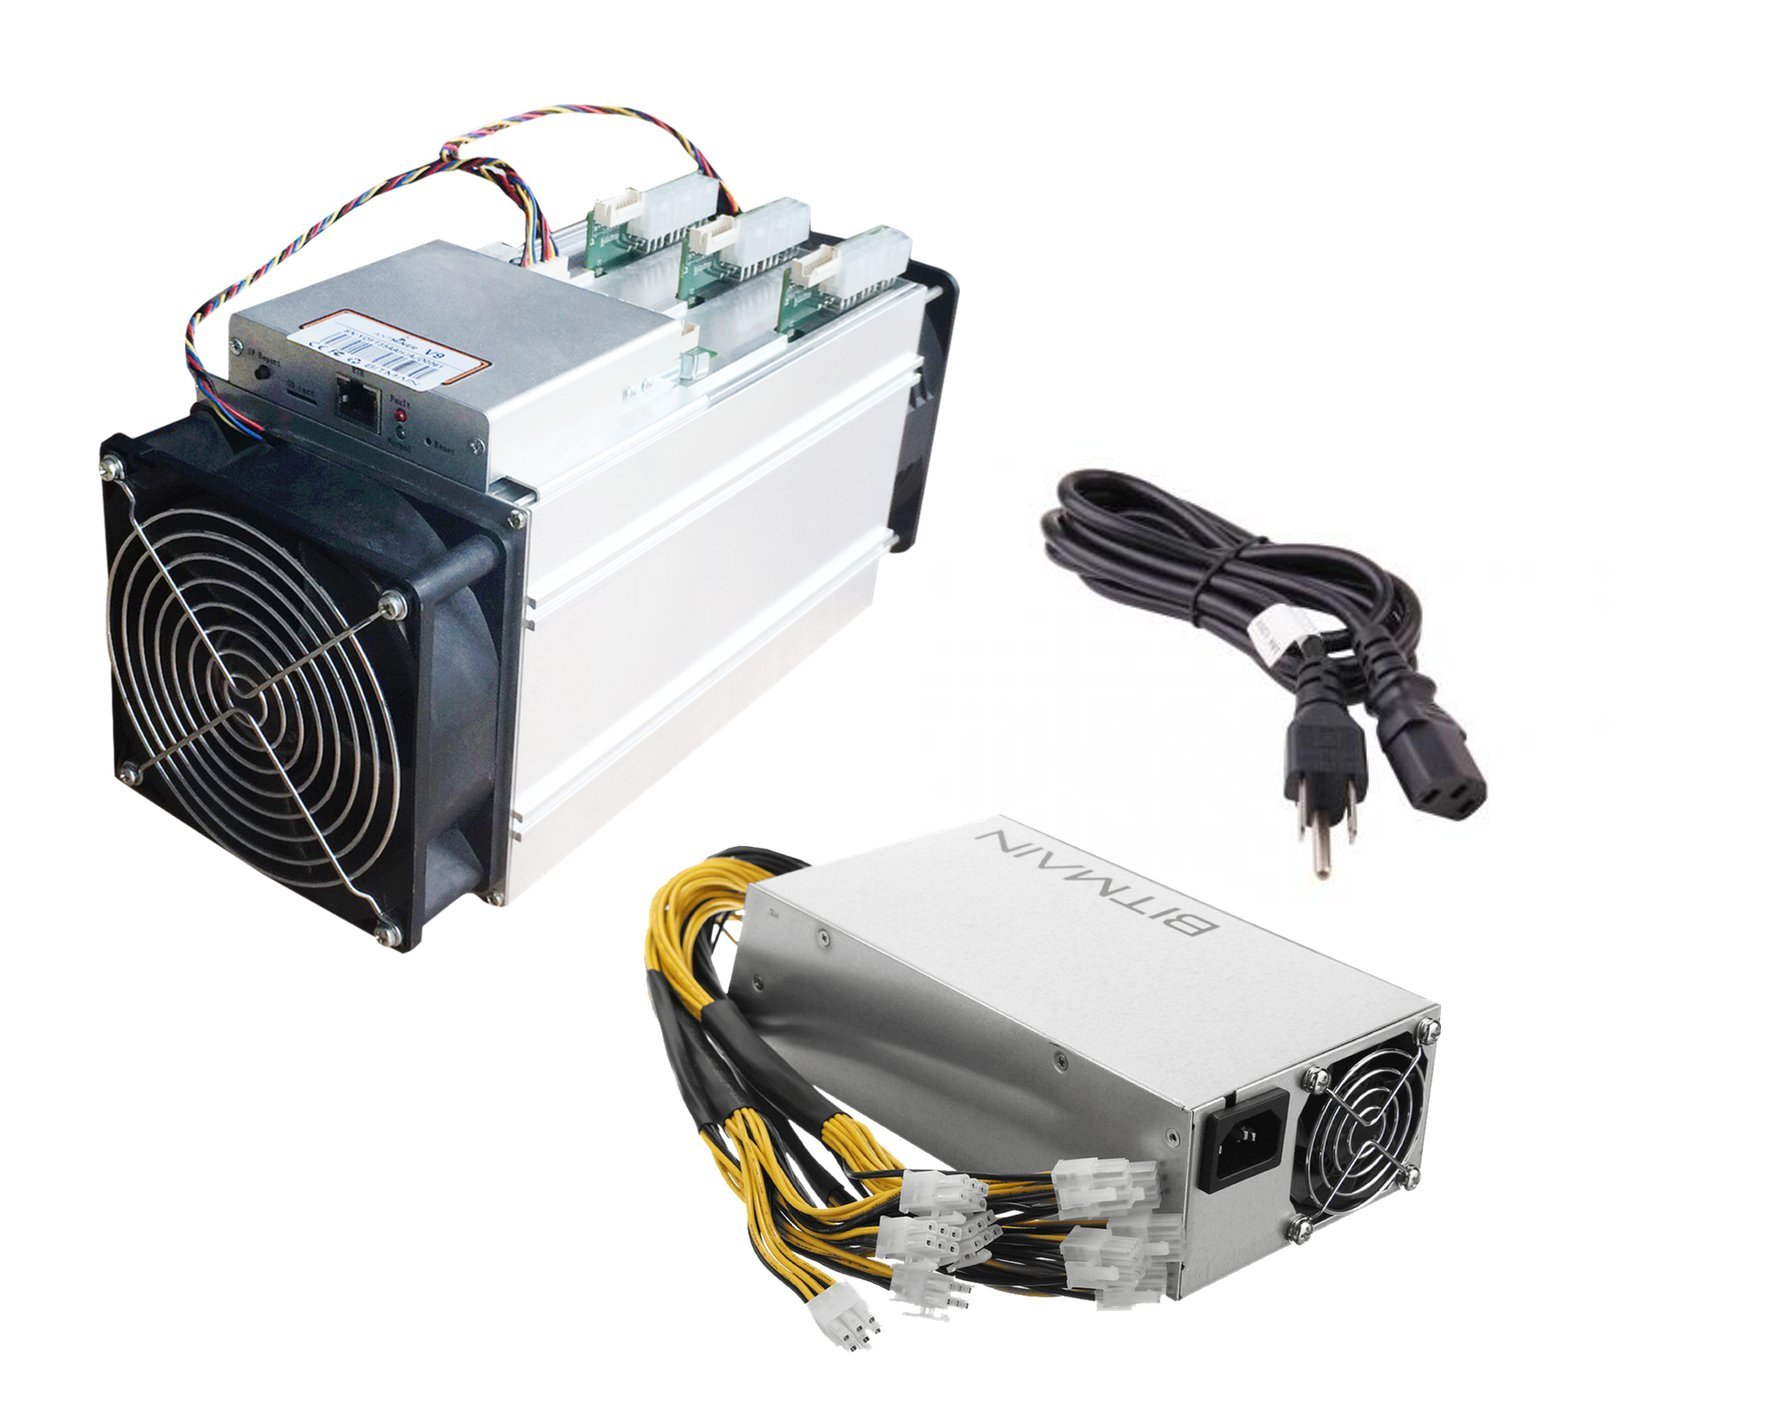 AntMiner V9 ~4TH/s @ 0.253W/GH Bitcoin / Bitcoin Cash ASIC Miner with PSU